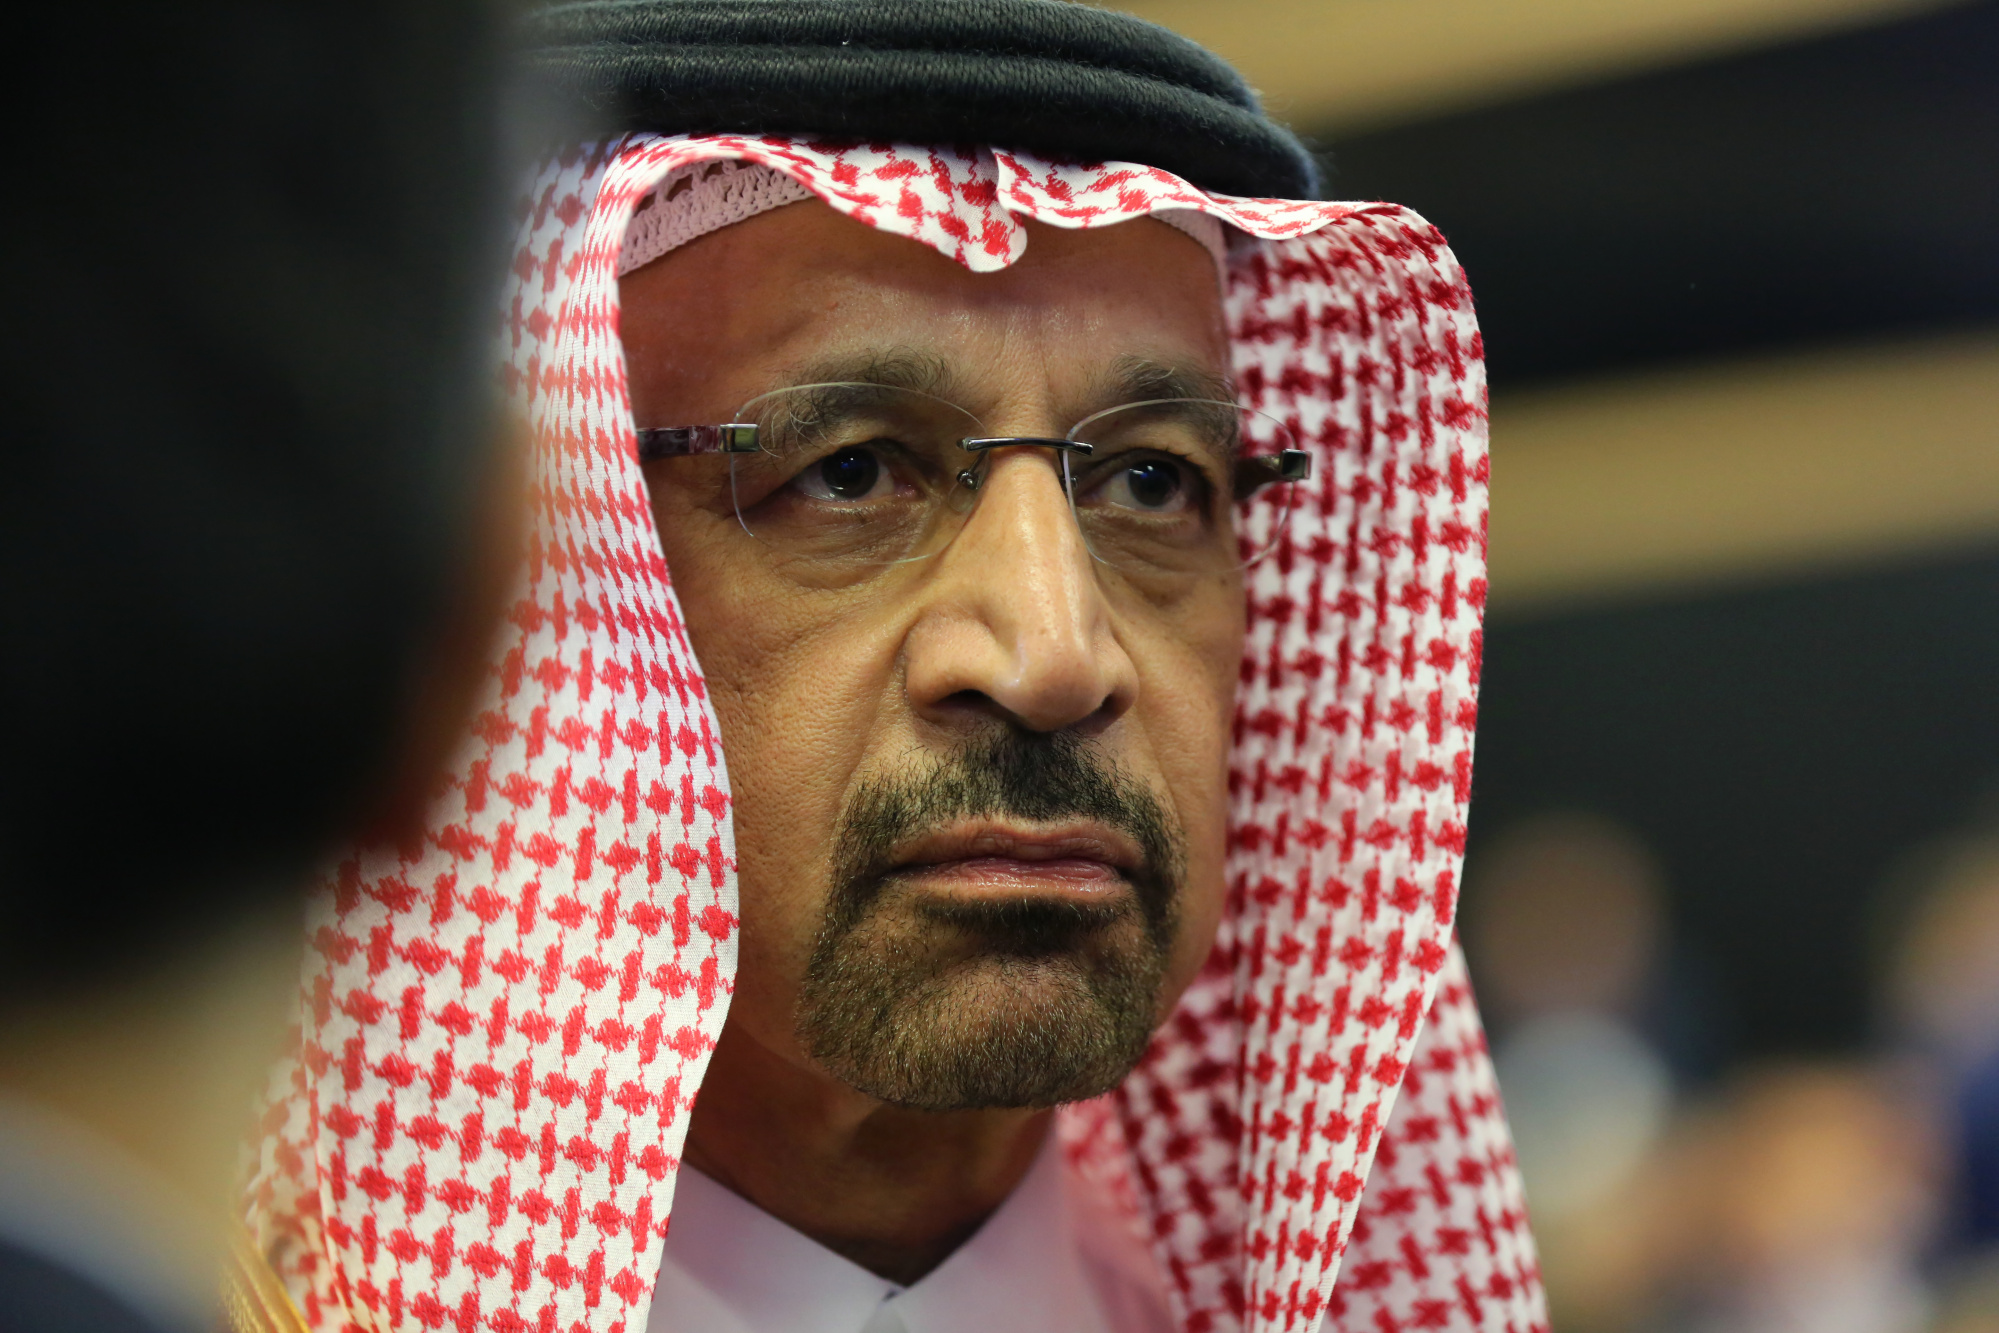 Khalid al-Falih, Saudi Arabia's energy minister, looks on during a panel debate at the St. Petersburg International Economic Forum (SPIEF) in St. Petersburg, Russia, on Friday, May 25, 2018. The economic forum this year will be attended by President Vladimir Putin and French President Emmanuel Macron, and panels include everything from how to do business in Russia to biotechnology and blockchain. Photographer: Chris Ratcliffe/Bloomberg